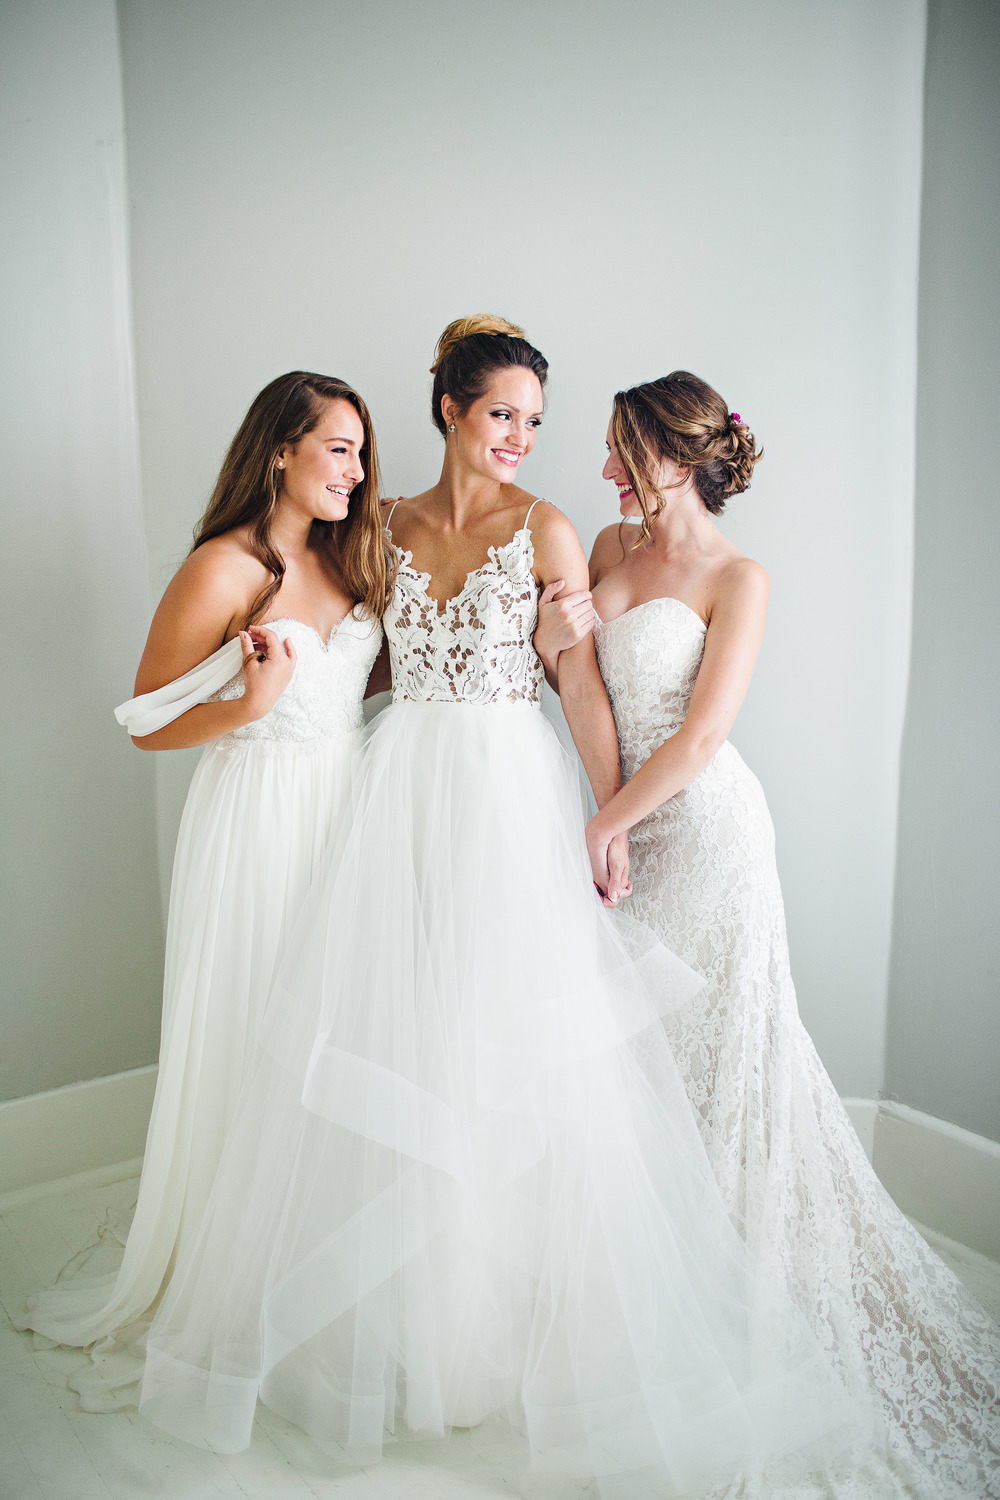 We just got back the images from our Bridal Lookbook 3.0 and we are so in love with the gorgeous images by Izzy Hudgins Photography!!! The shoot features several of our newest gowns and was taken at Studio Share Savannah. Cannot wait to share all the prettiness of this. Dresses from left: Sarah Seven, Blush by Hayley Paige, Ti Adora all available now.